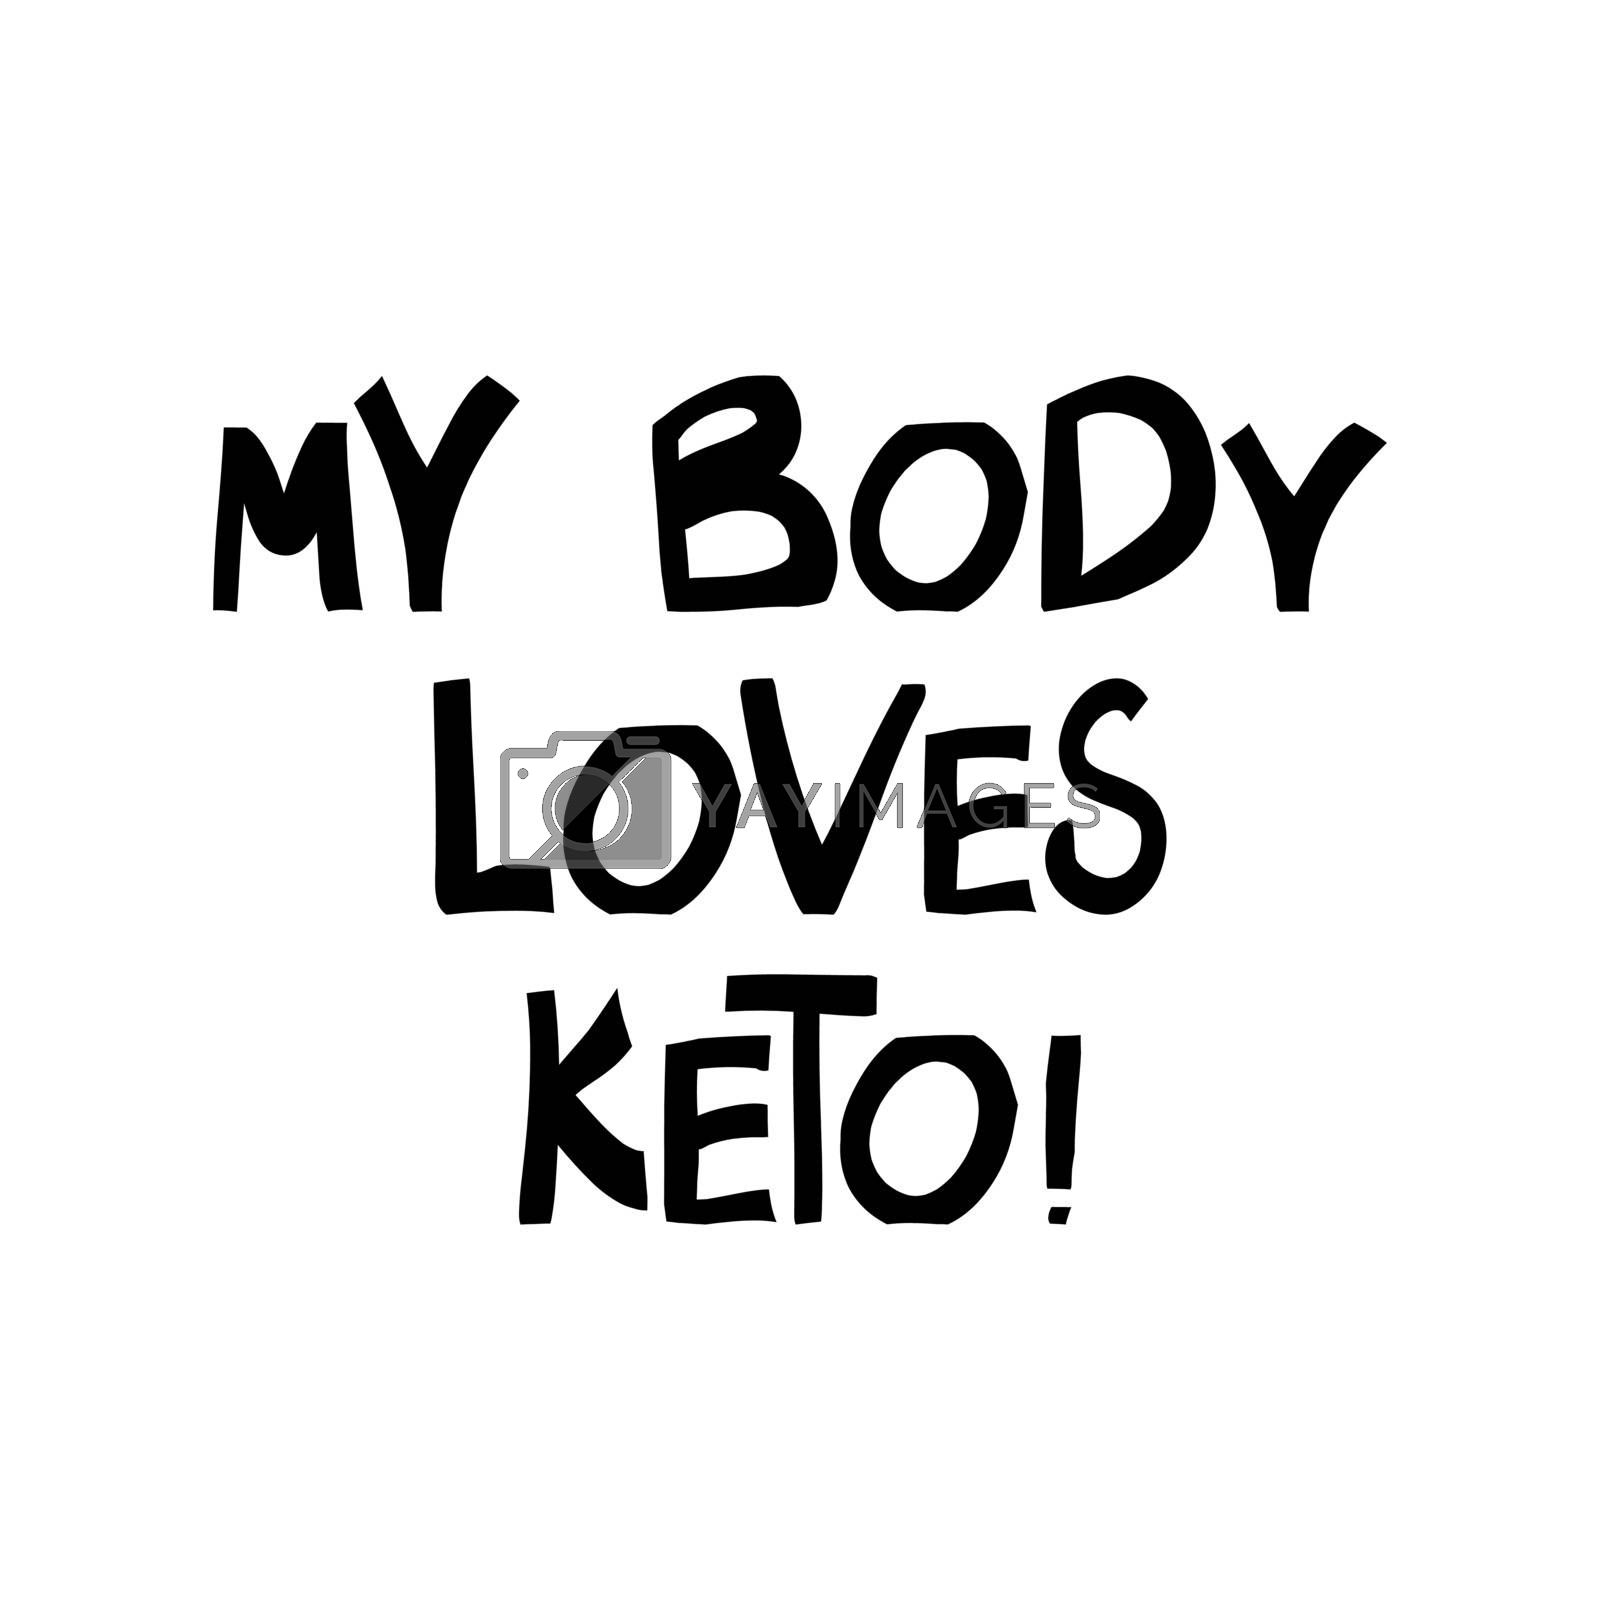 My body loves keto. Cute hand drawn lettering in modern scandinavian style. Isolated on white background. Vector stock illustration.